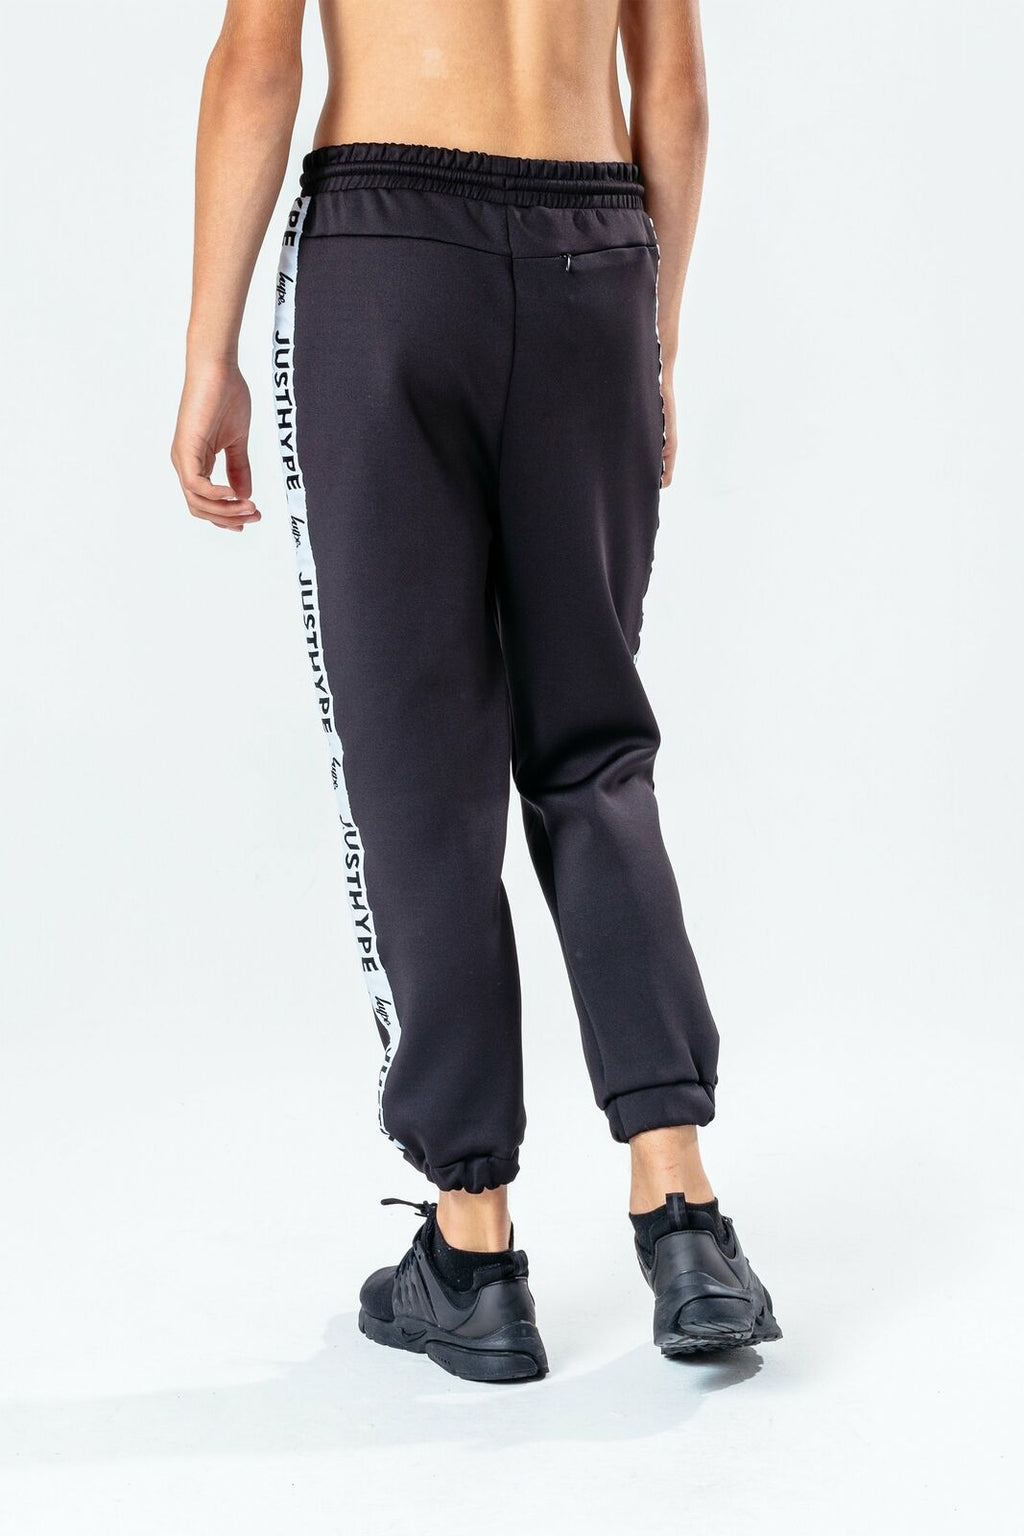 Speckle Fade Poly Kids Joggers - Black/White